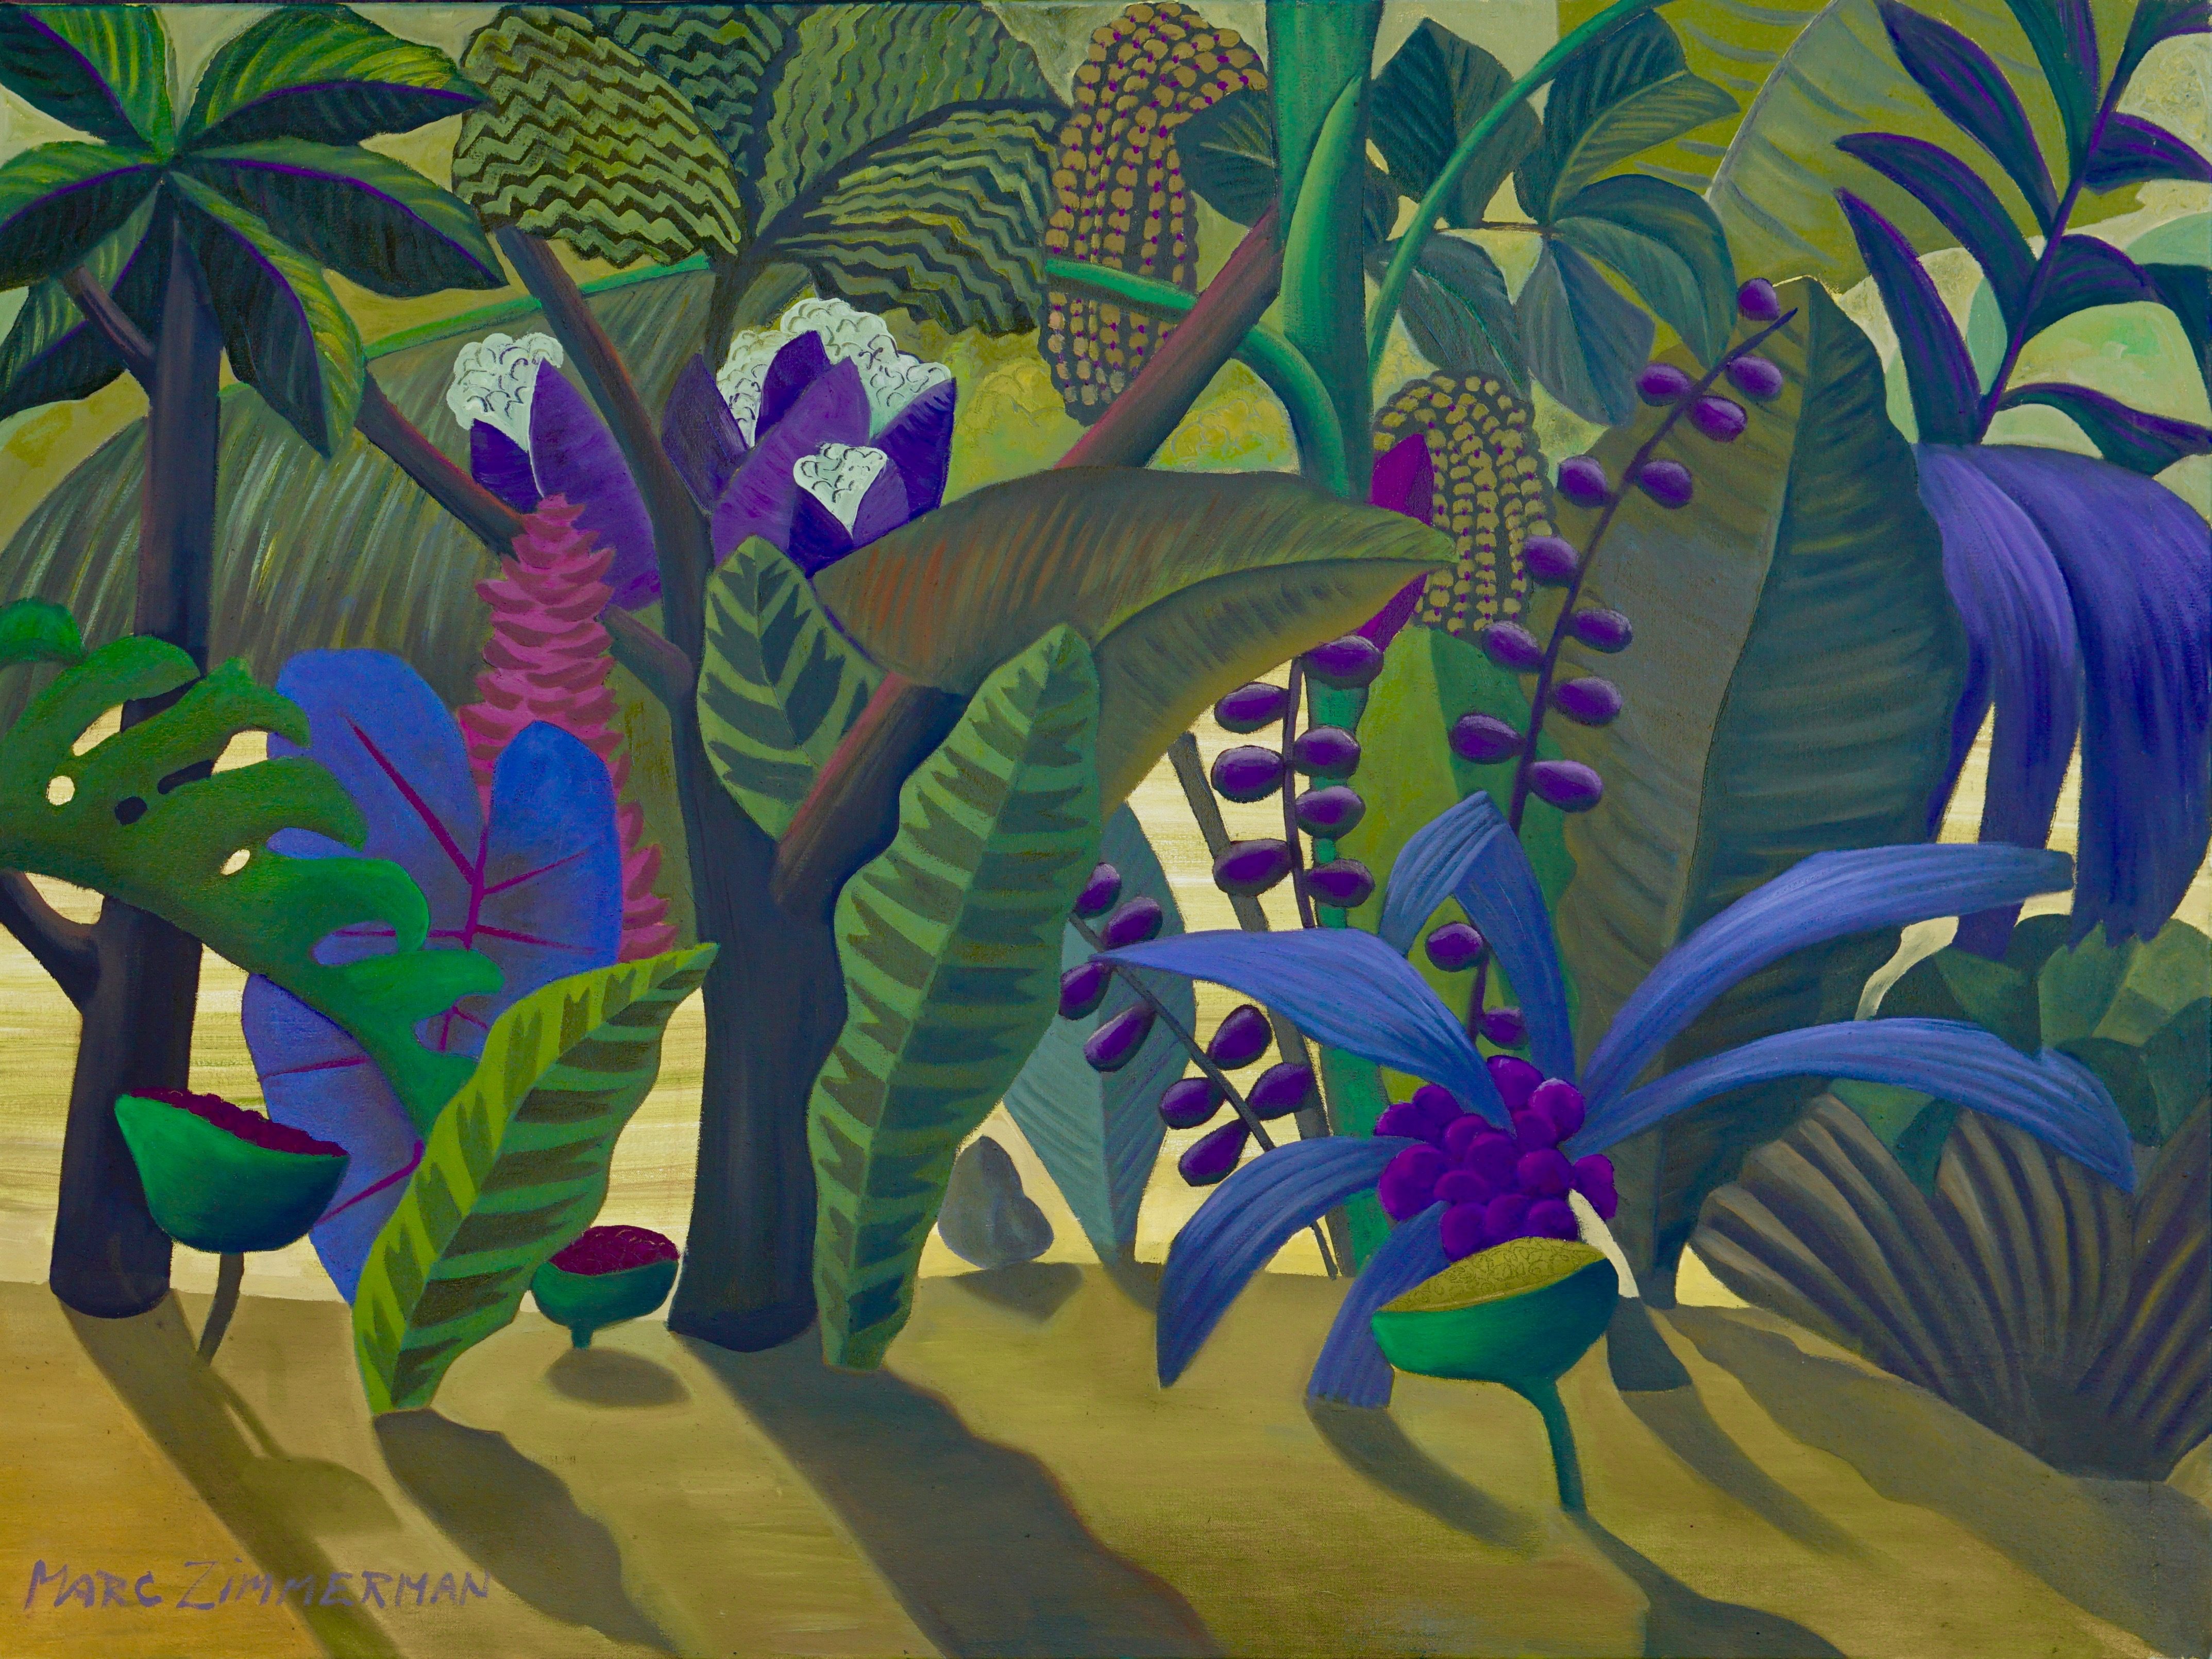 Surreal Jungle artwork by Marc Zimmerman - art listed for sale on Artplode